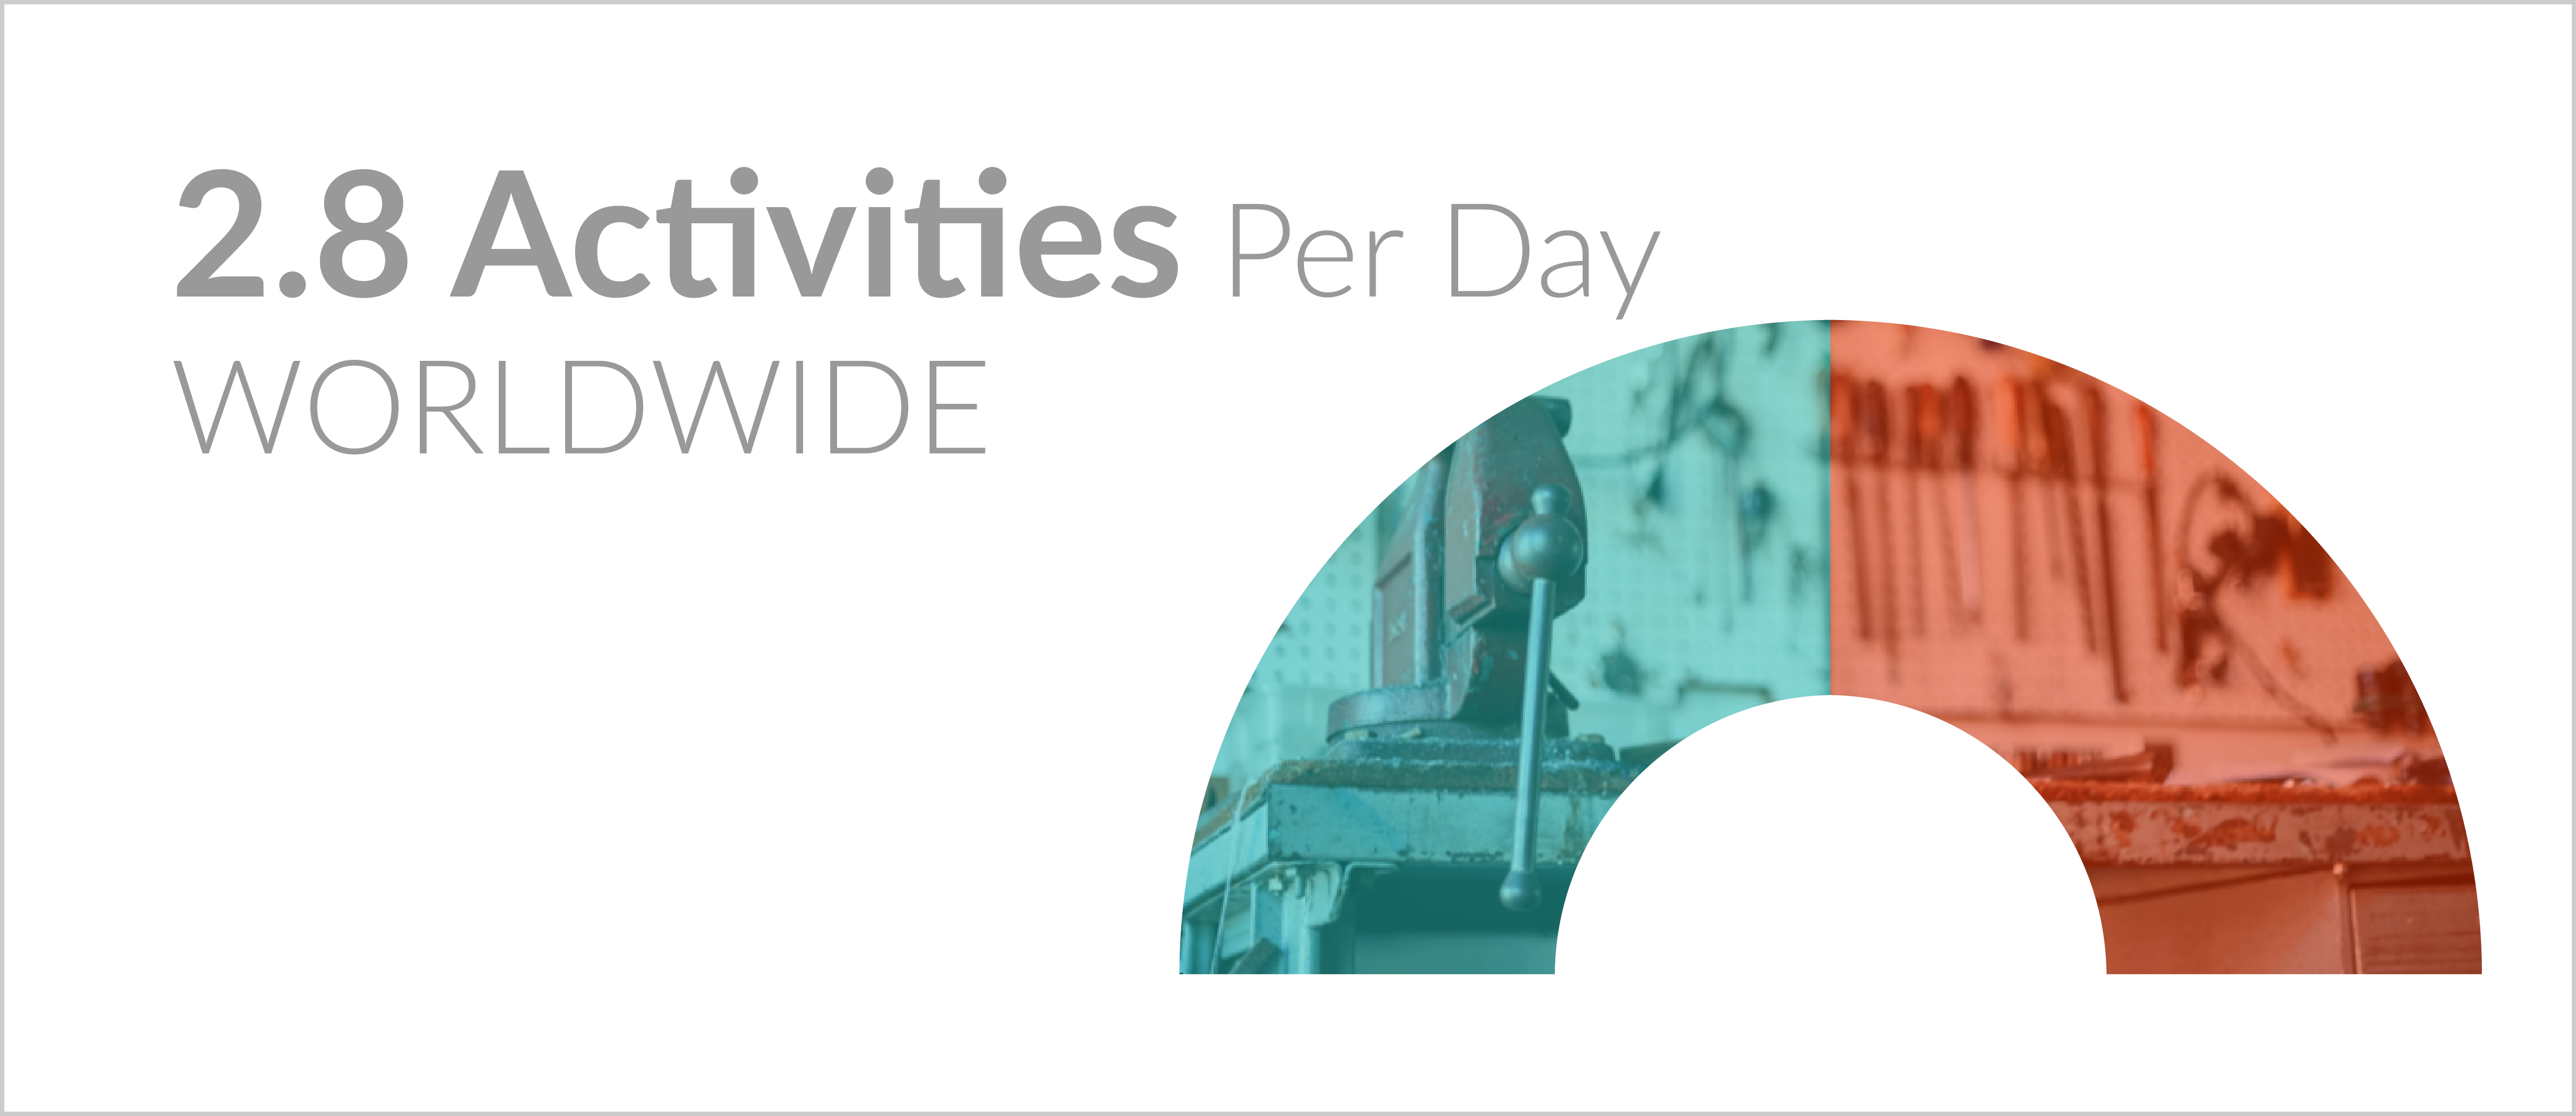 Mobile CRM Activities Per Day